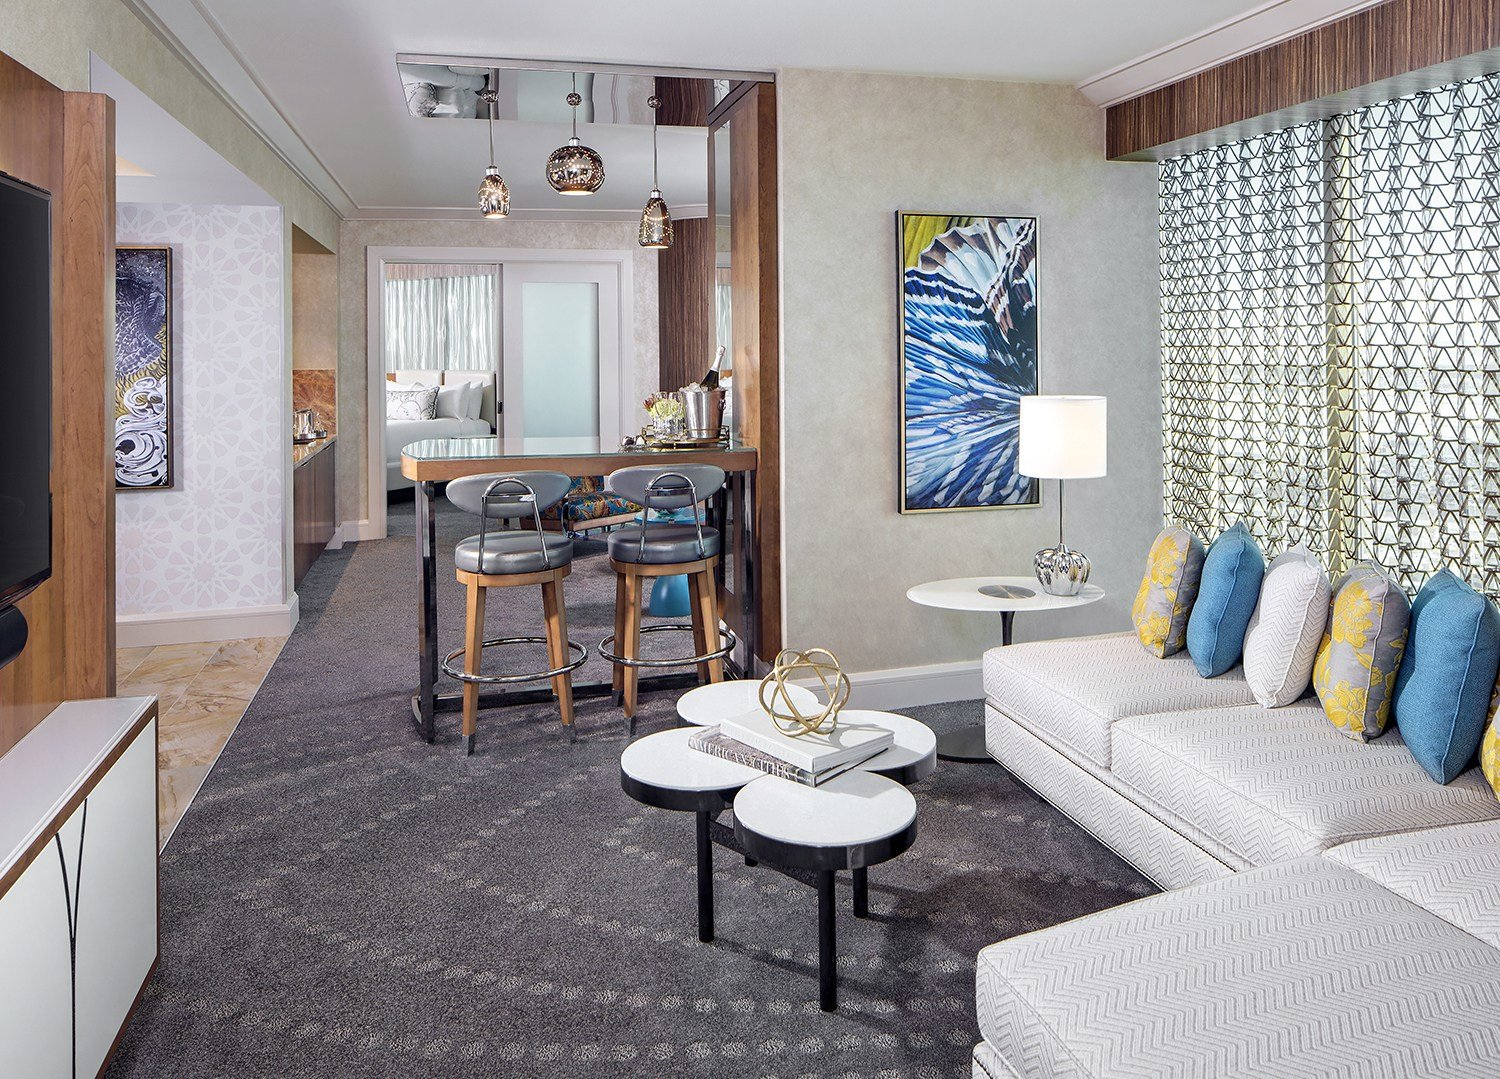 Best Mandalay Bay's Remodeled Hotel Rooms Give A Beach Vibe With Pictures